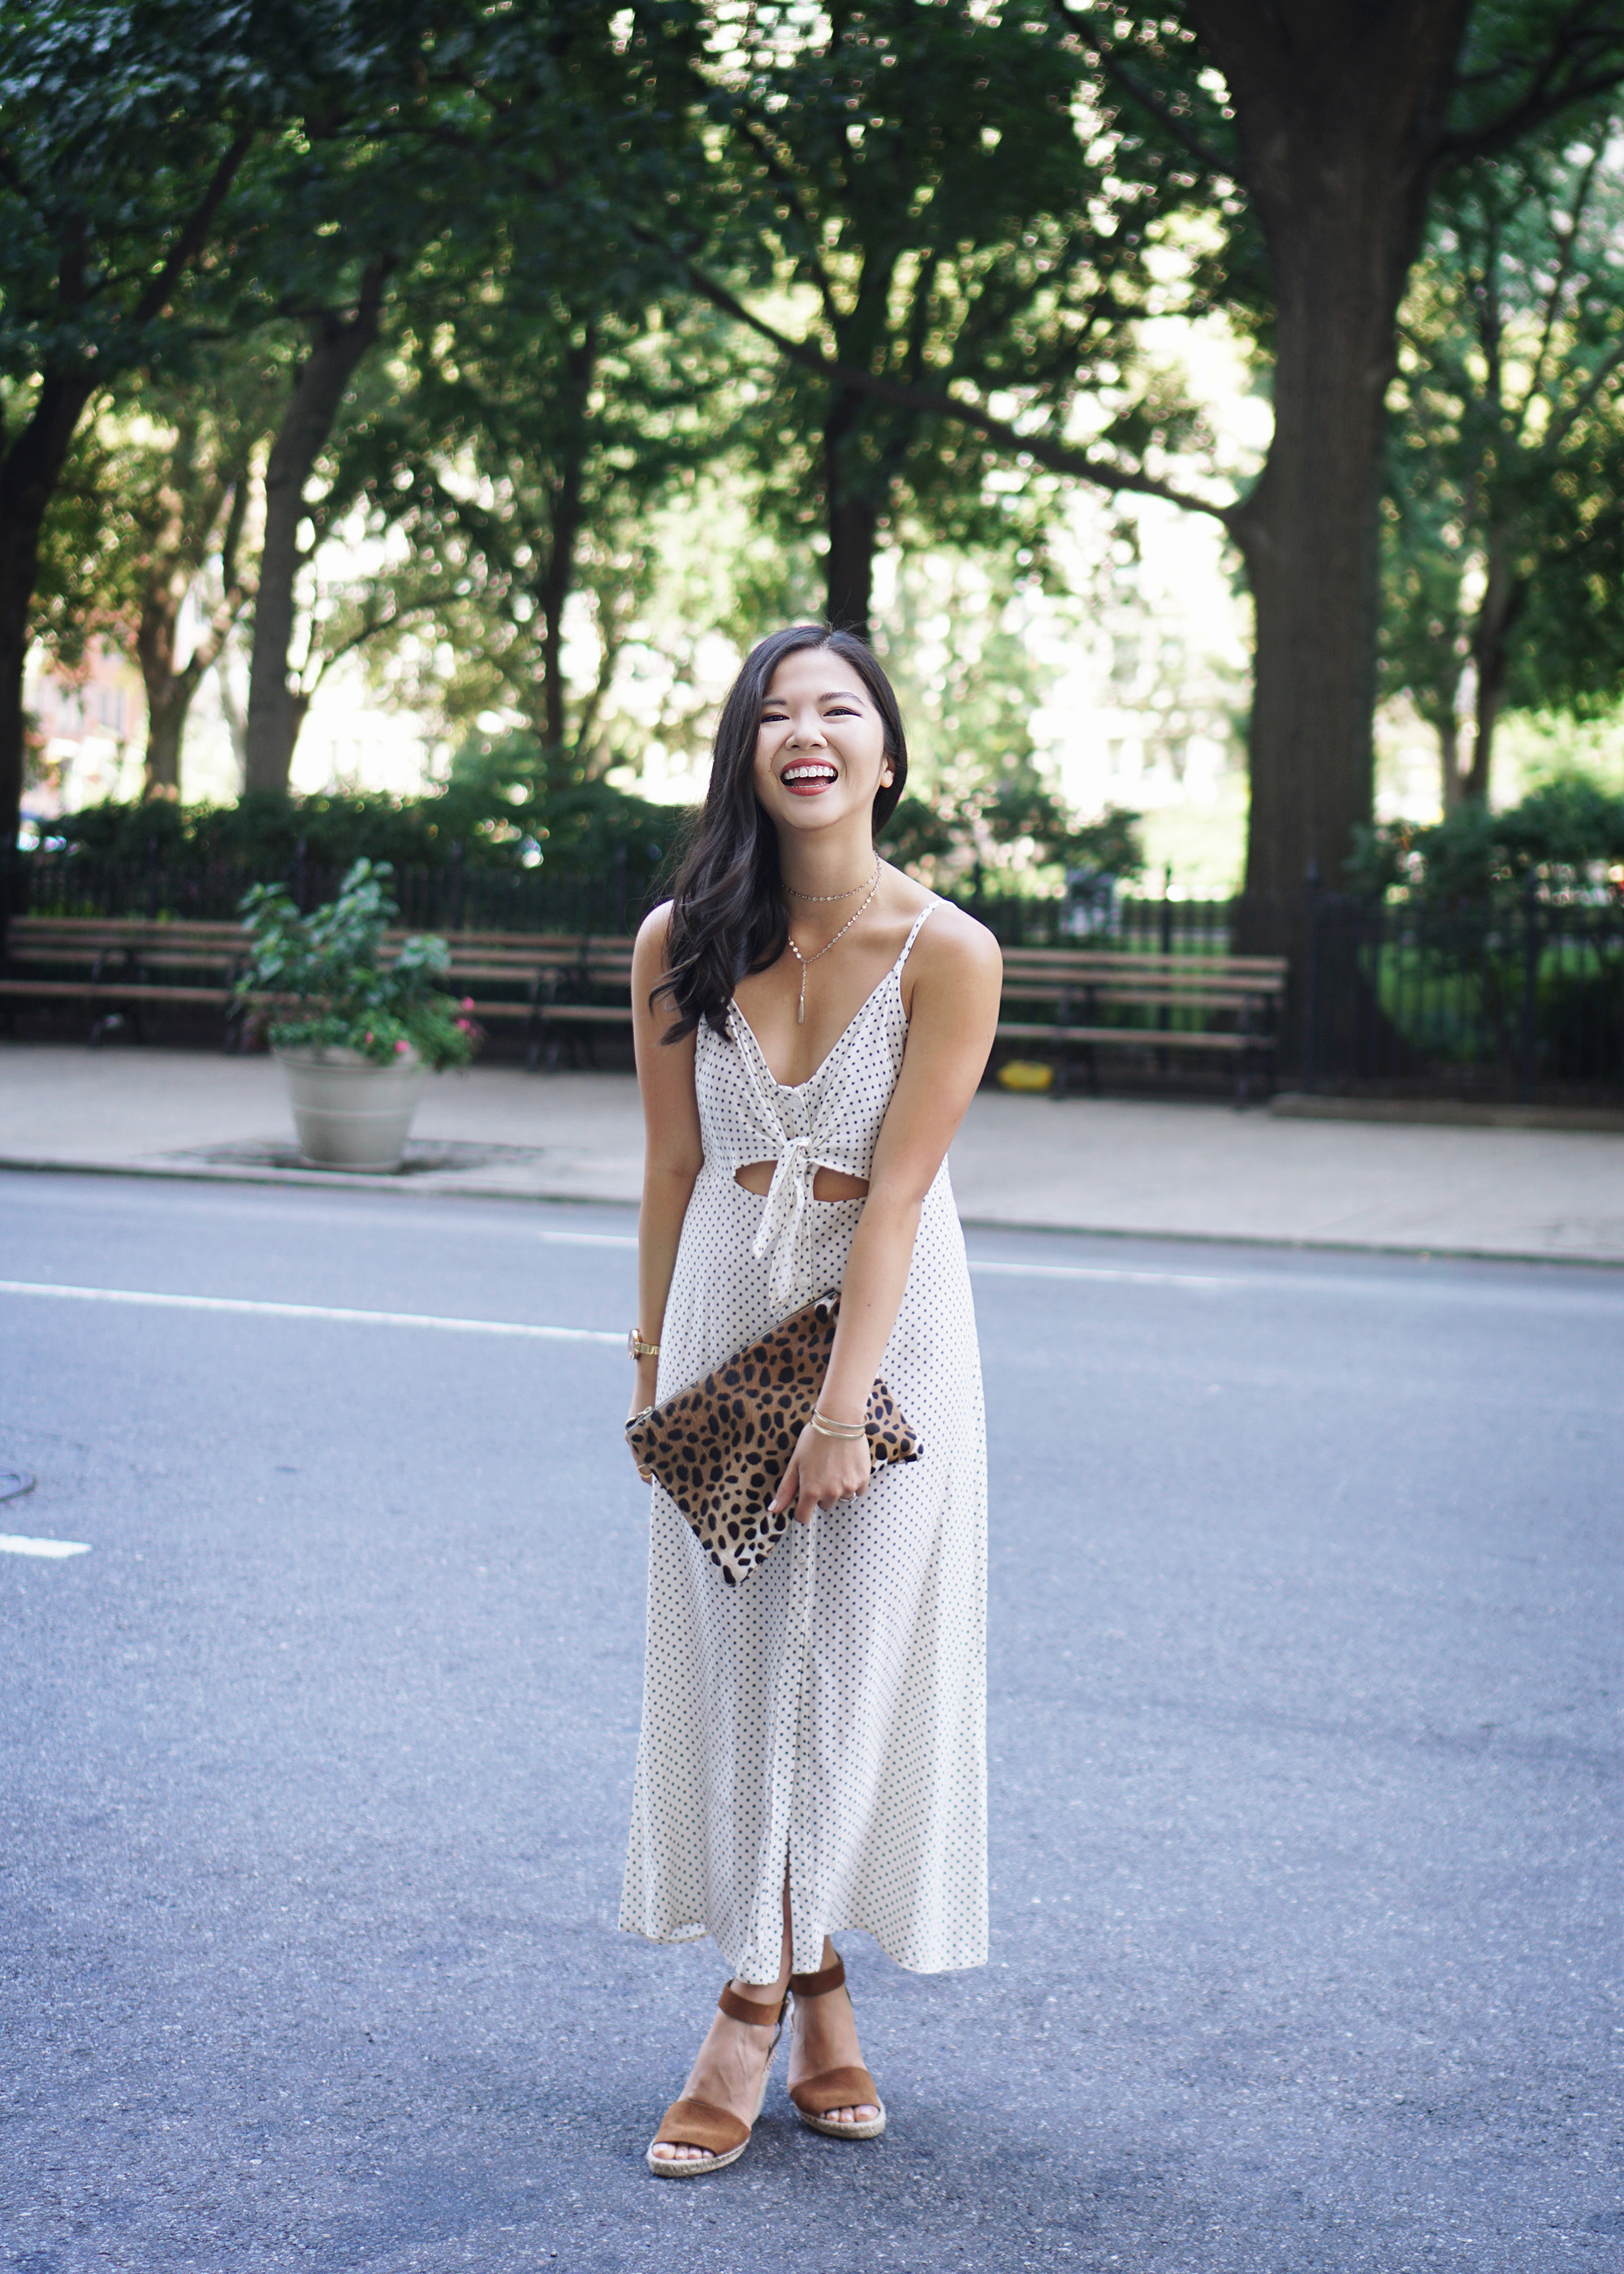 Summer Style Inspiration: Black & White Print Tie Front Slip Dress